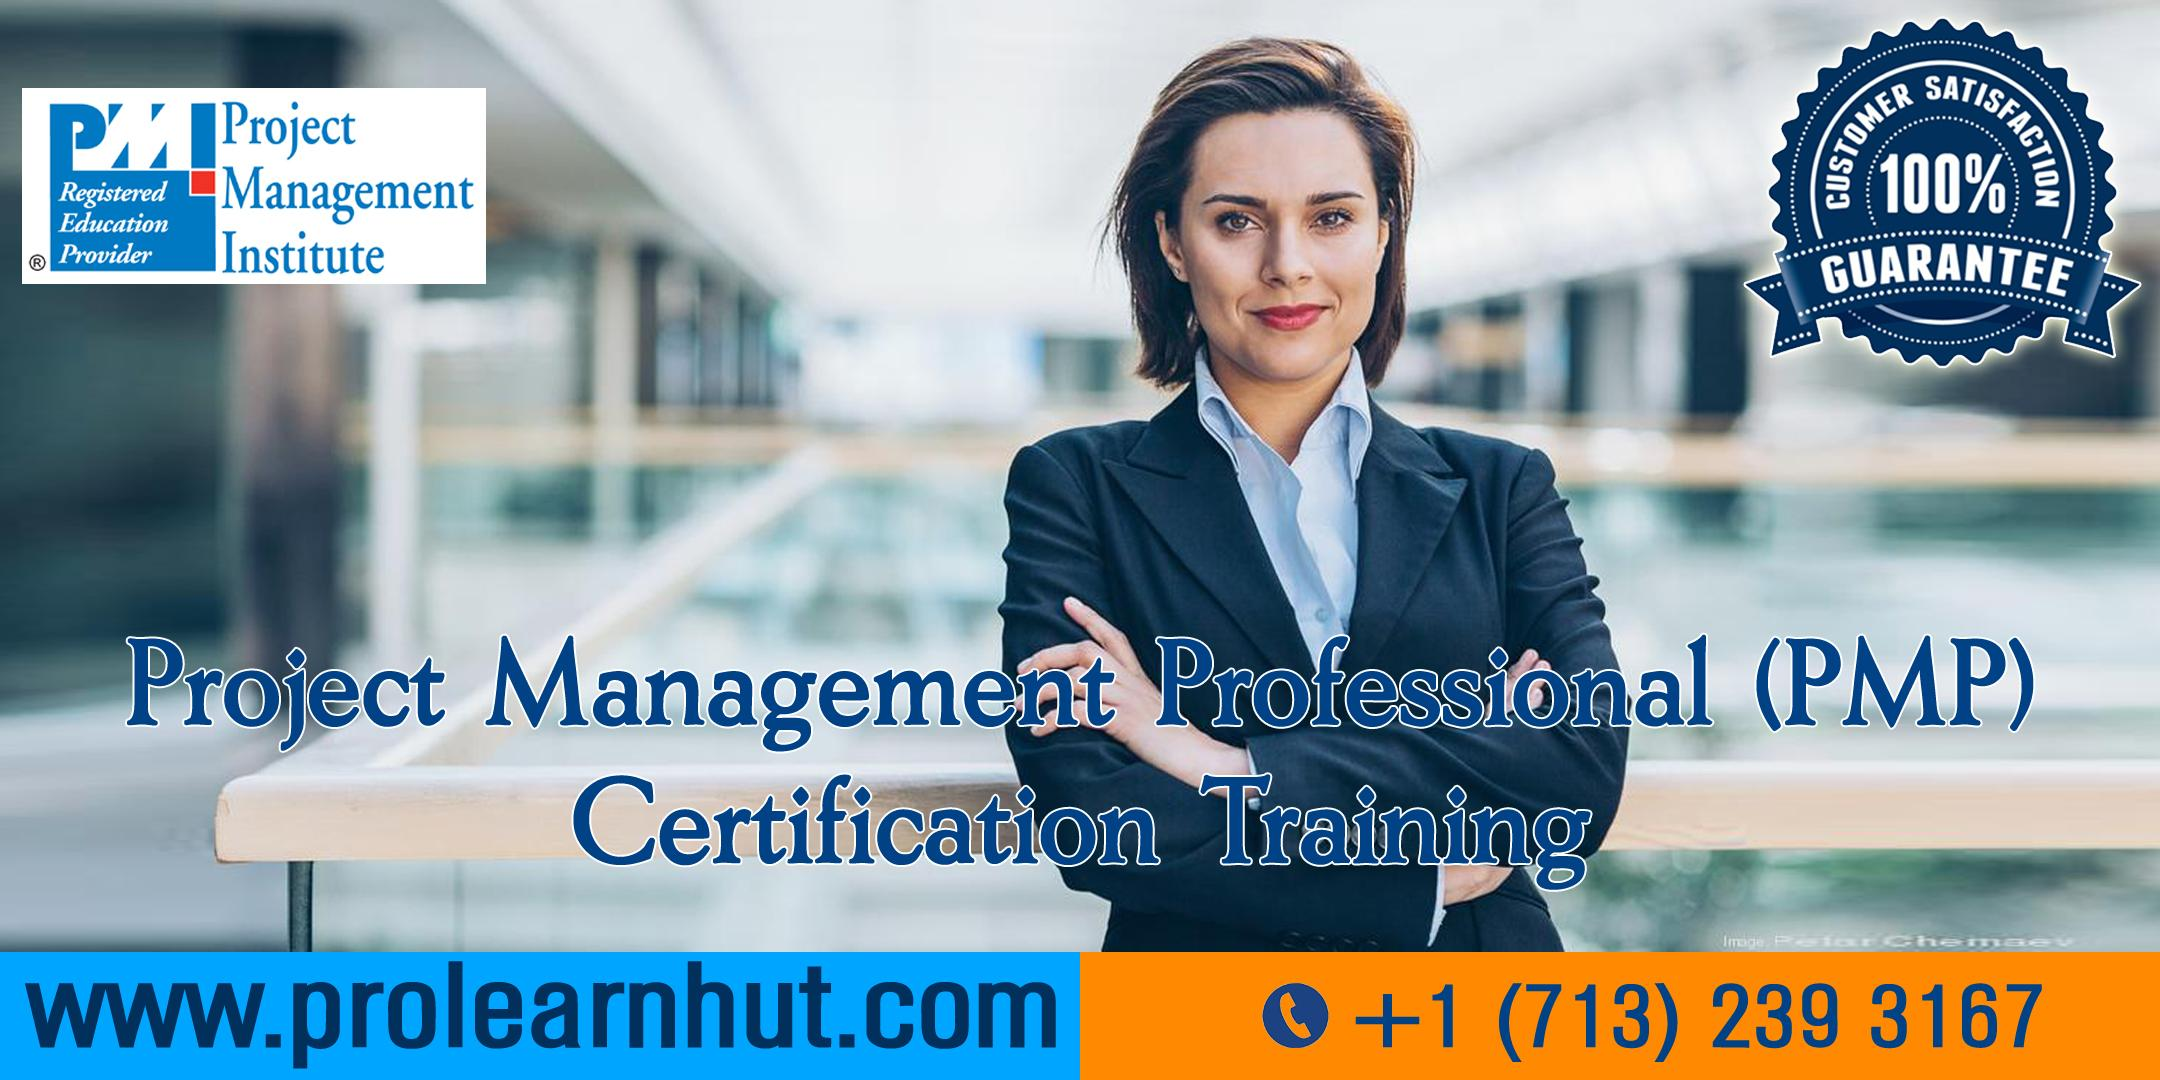 PMP Certification   Project Management Certification  PMP Training in Henderson, NV   ProLearnHut